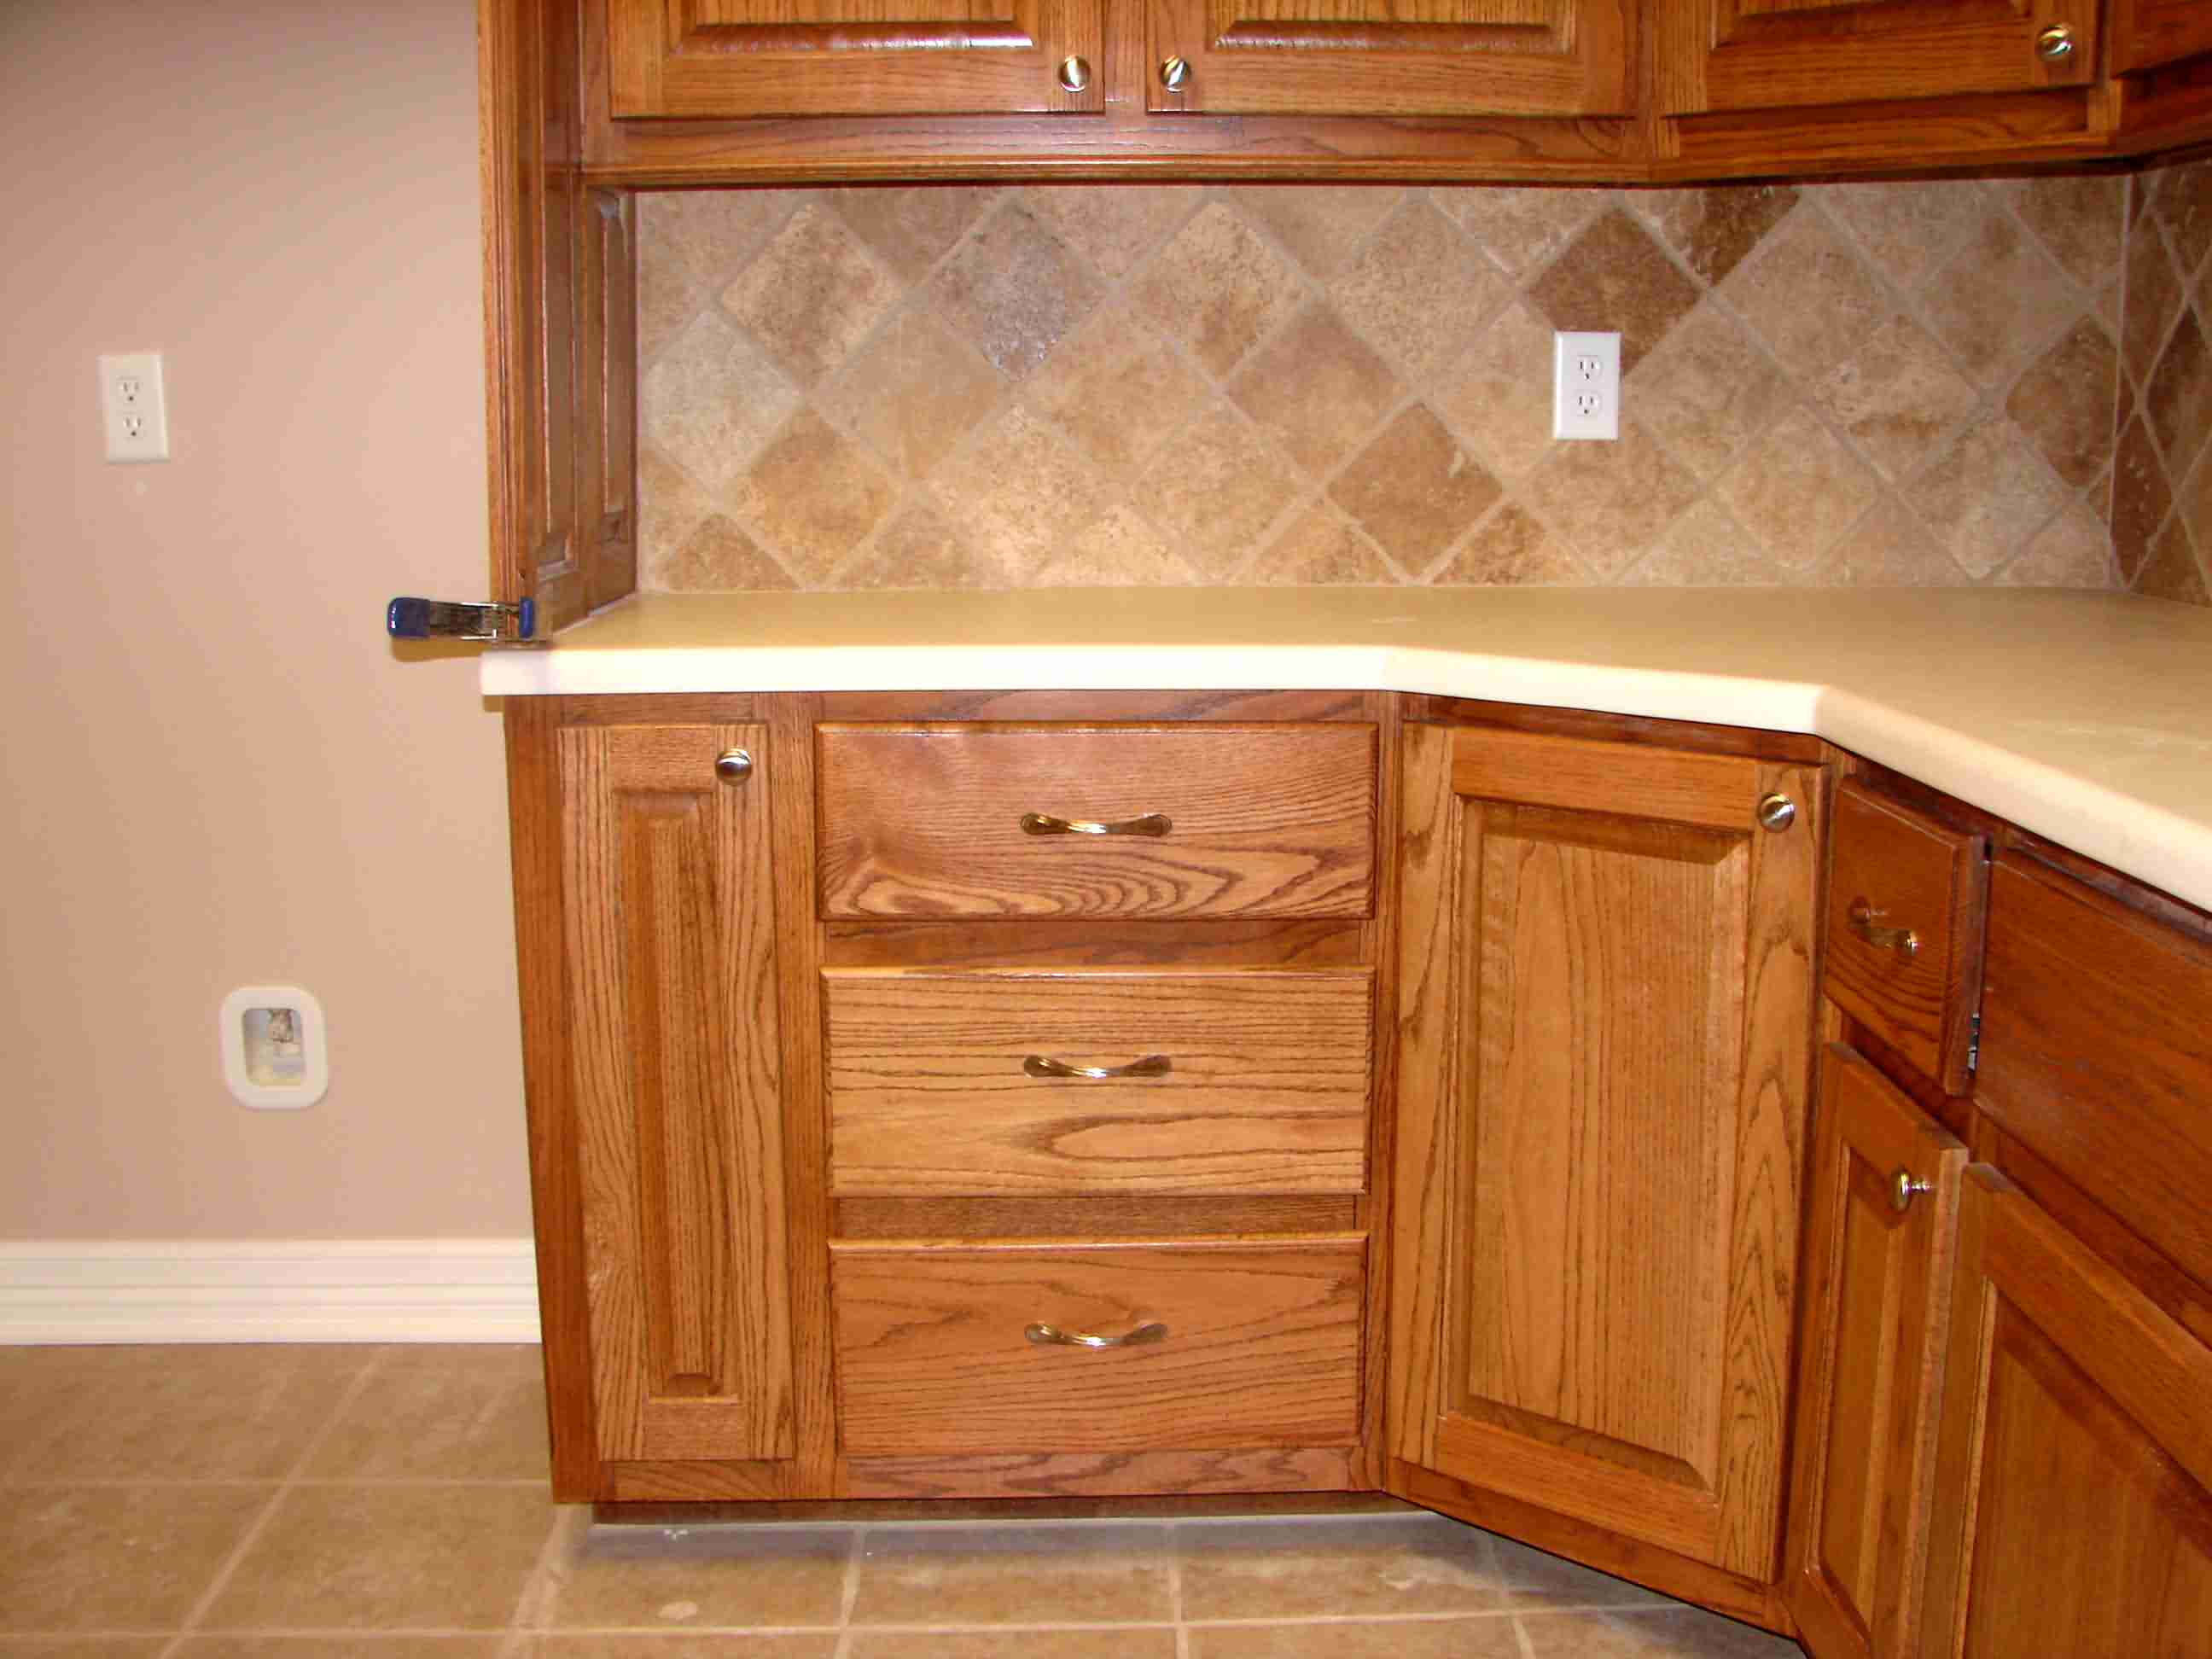 Kimboleeey corner kitchen cabinet ideas for Corner kitchen cabinet